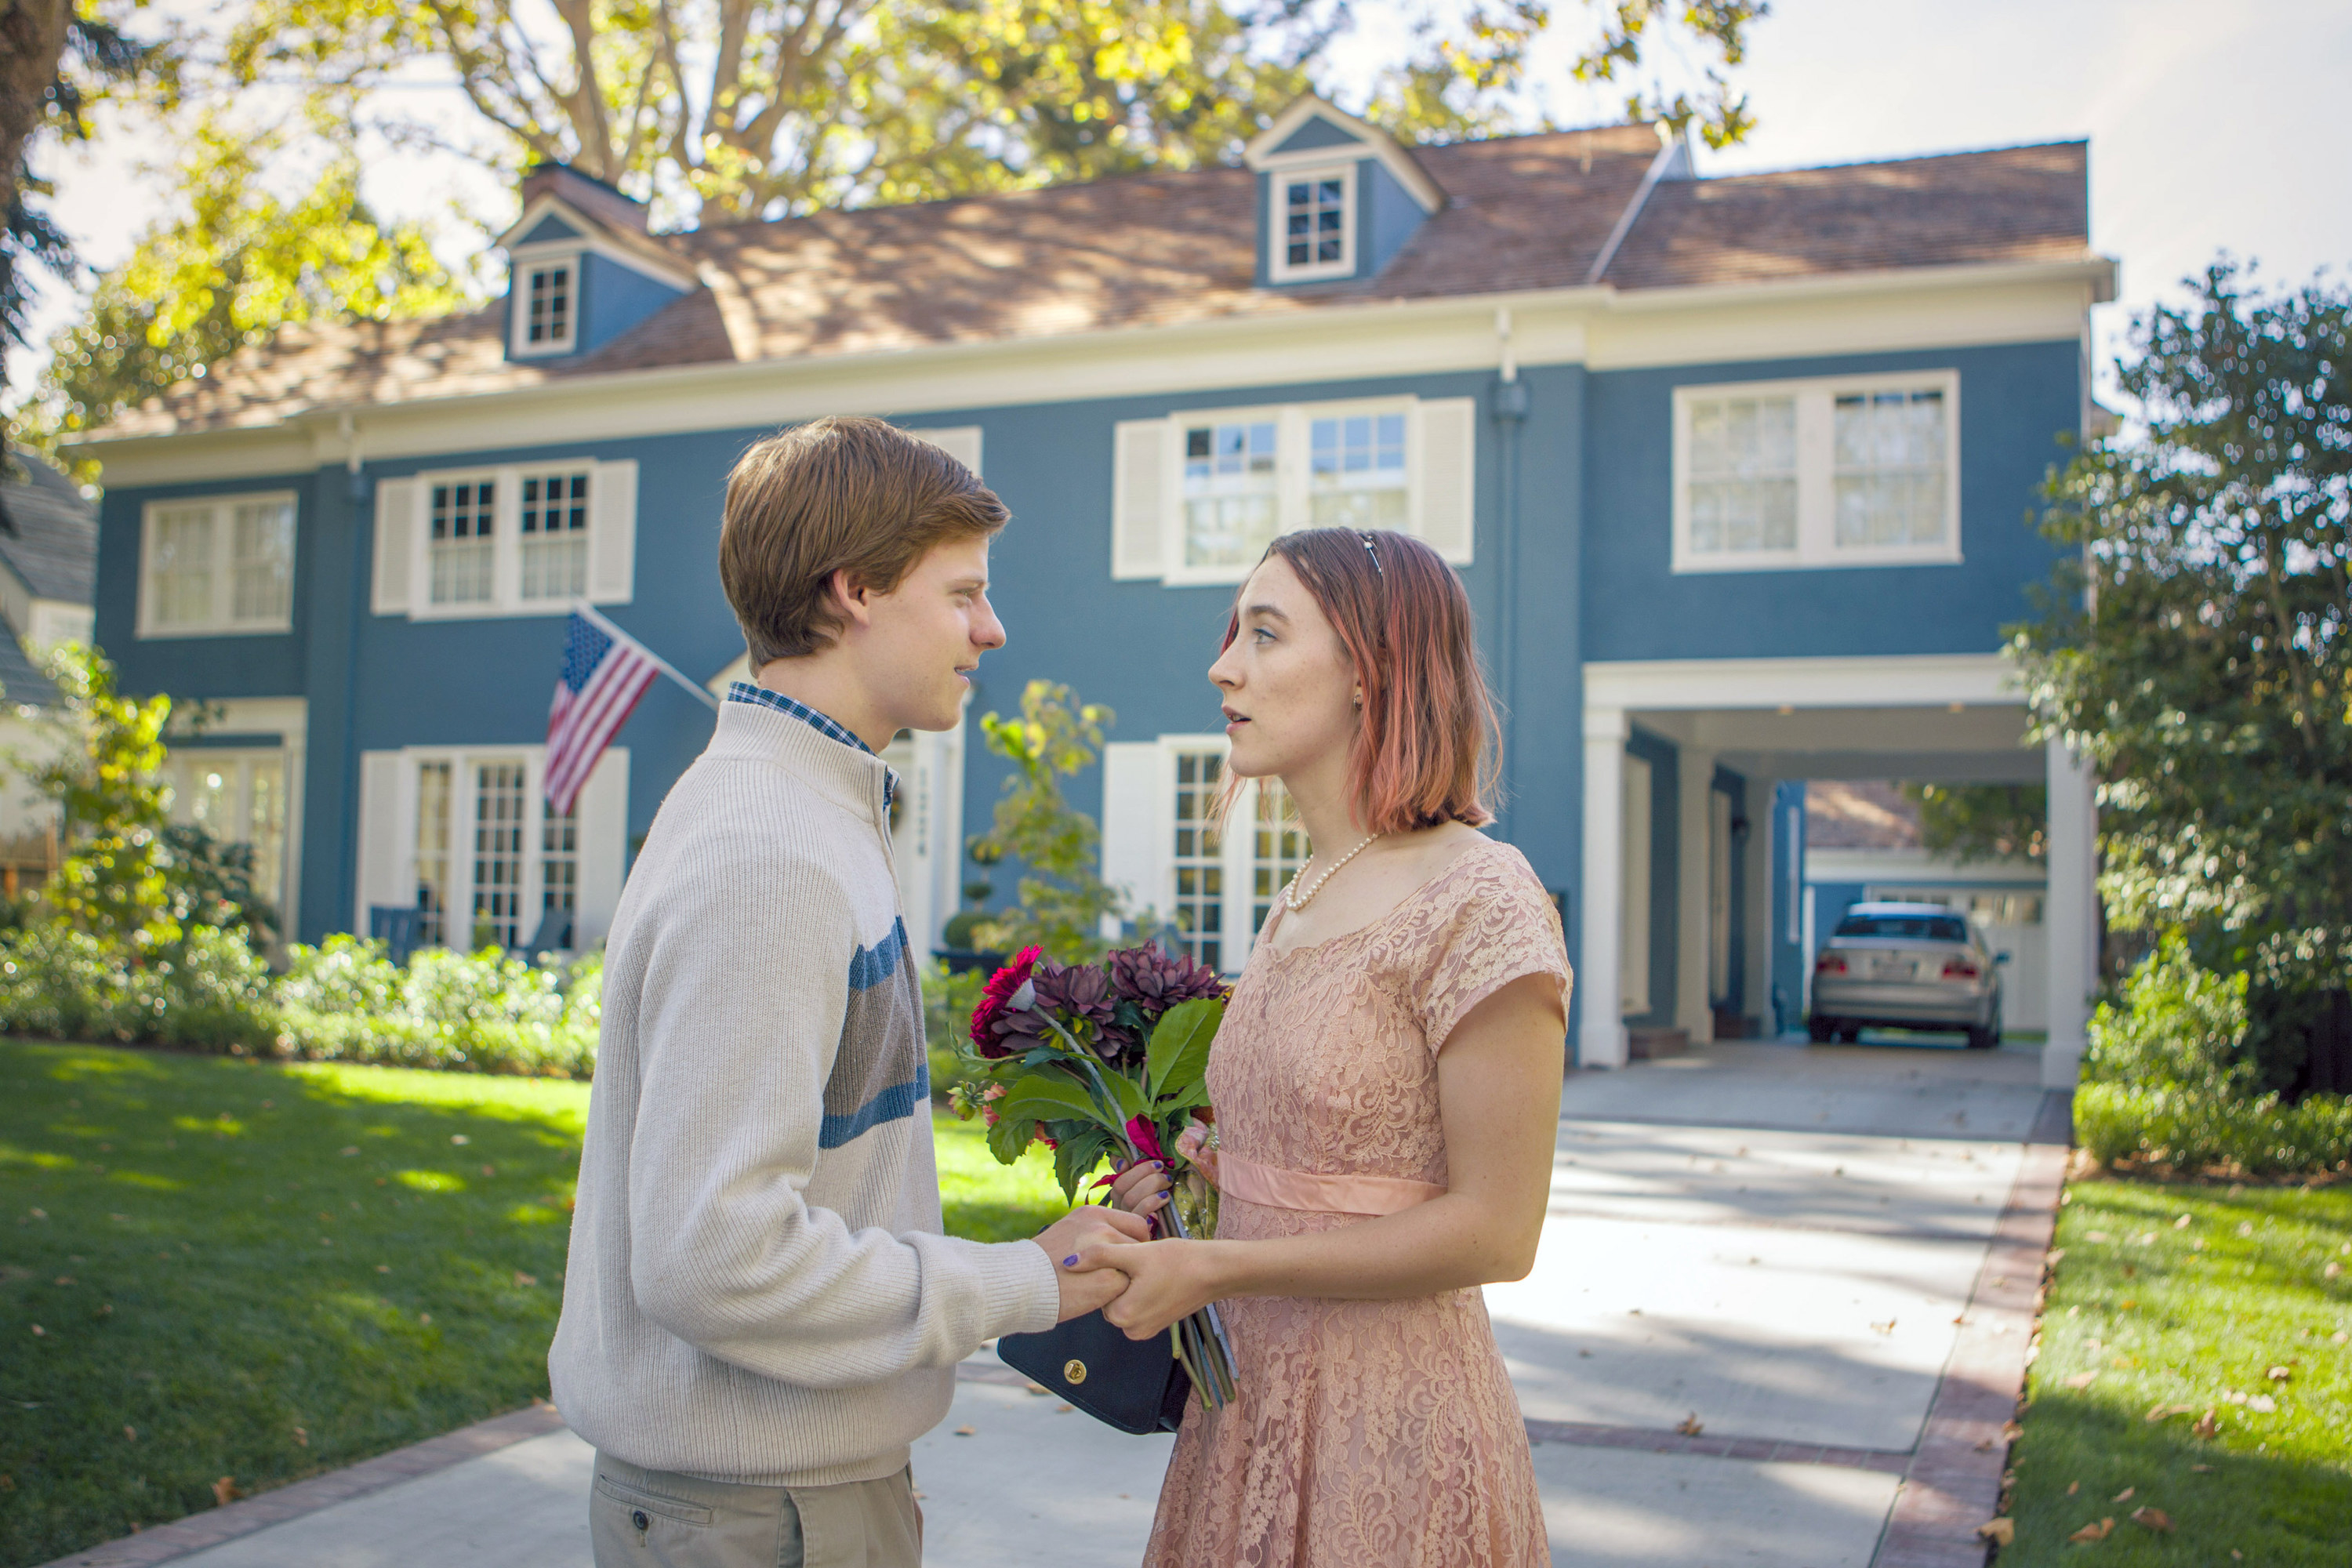 Lucas Hedges and Saoirse Ronan chat outside a gorgeous blue house